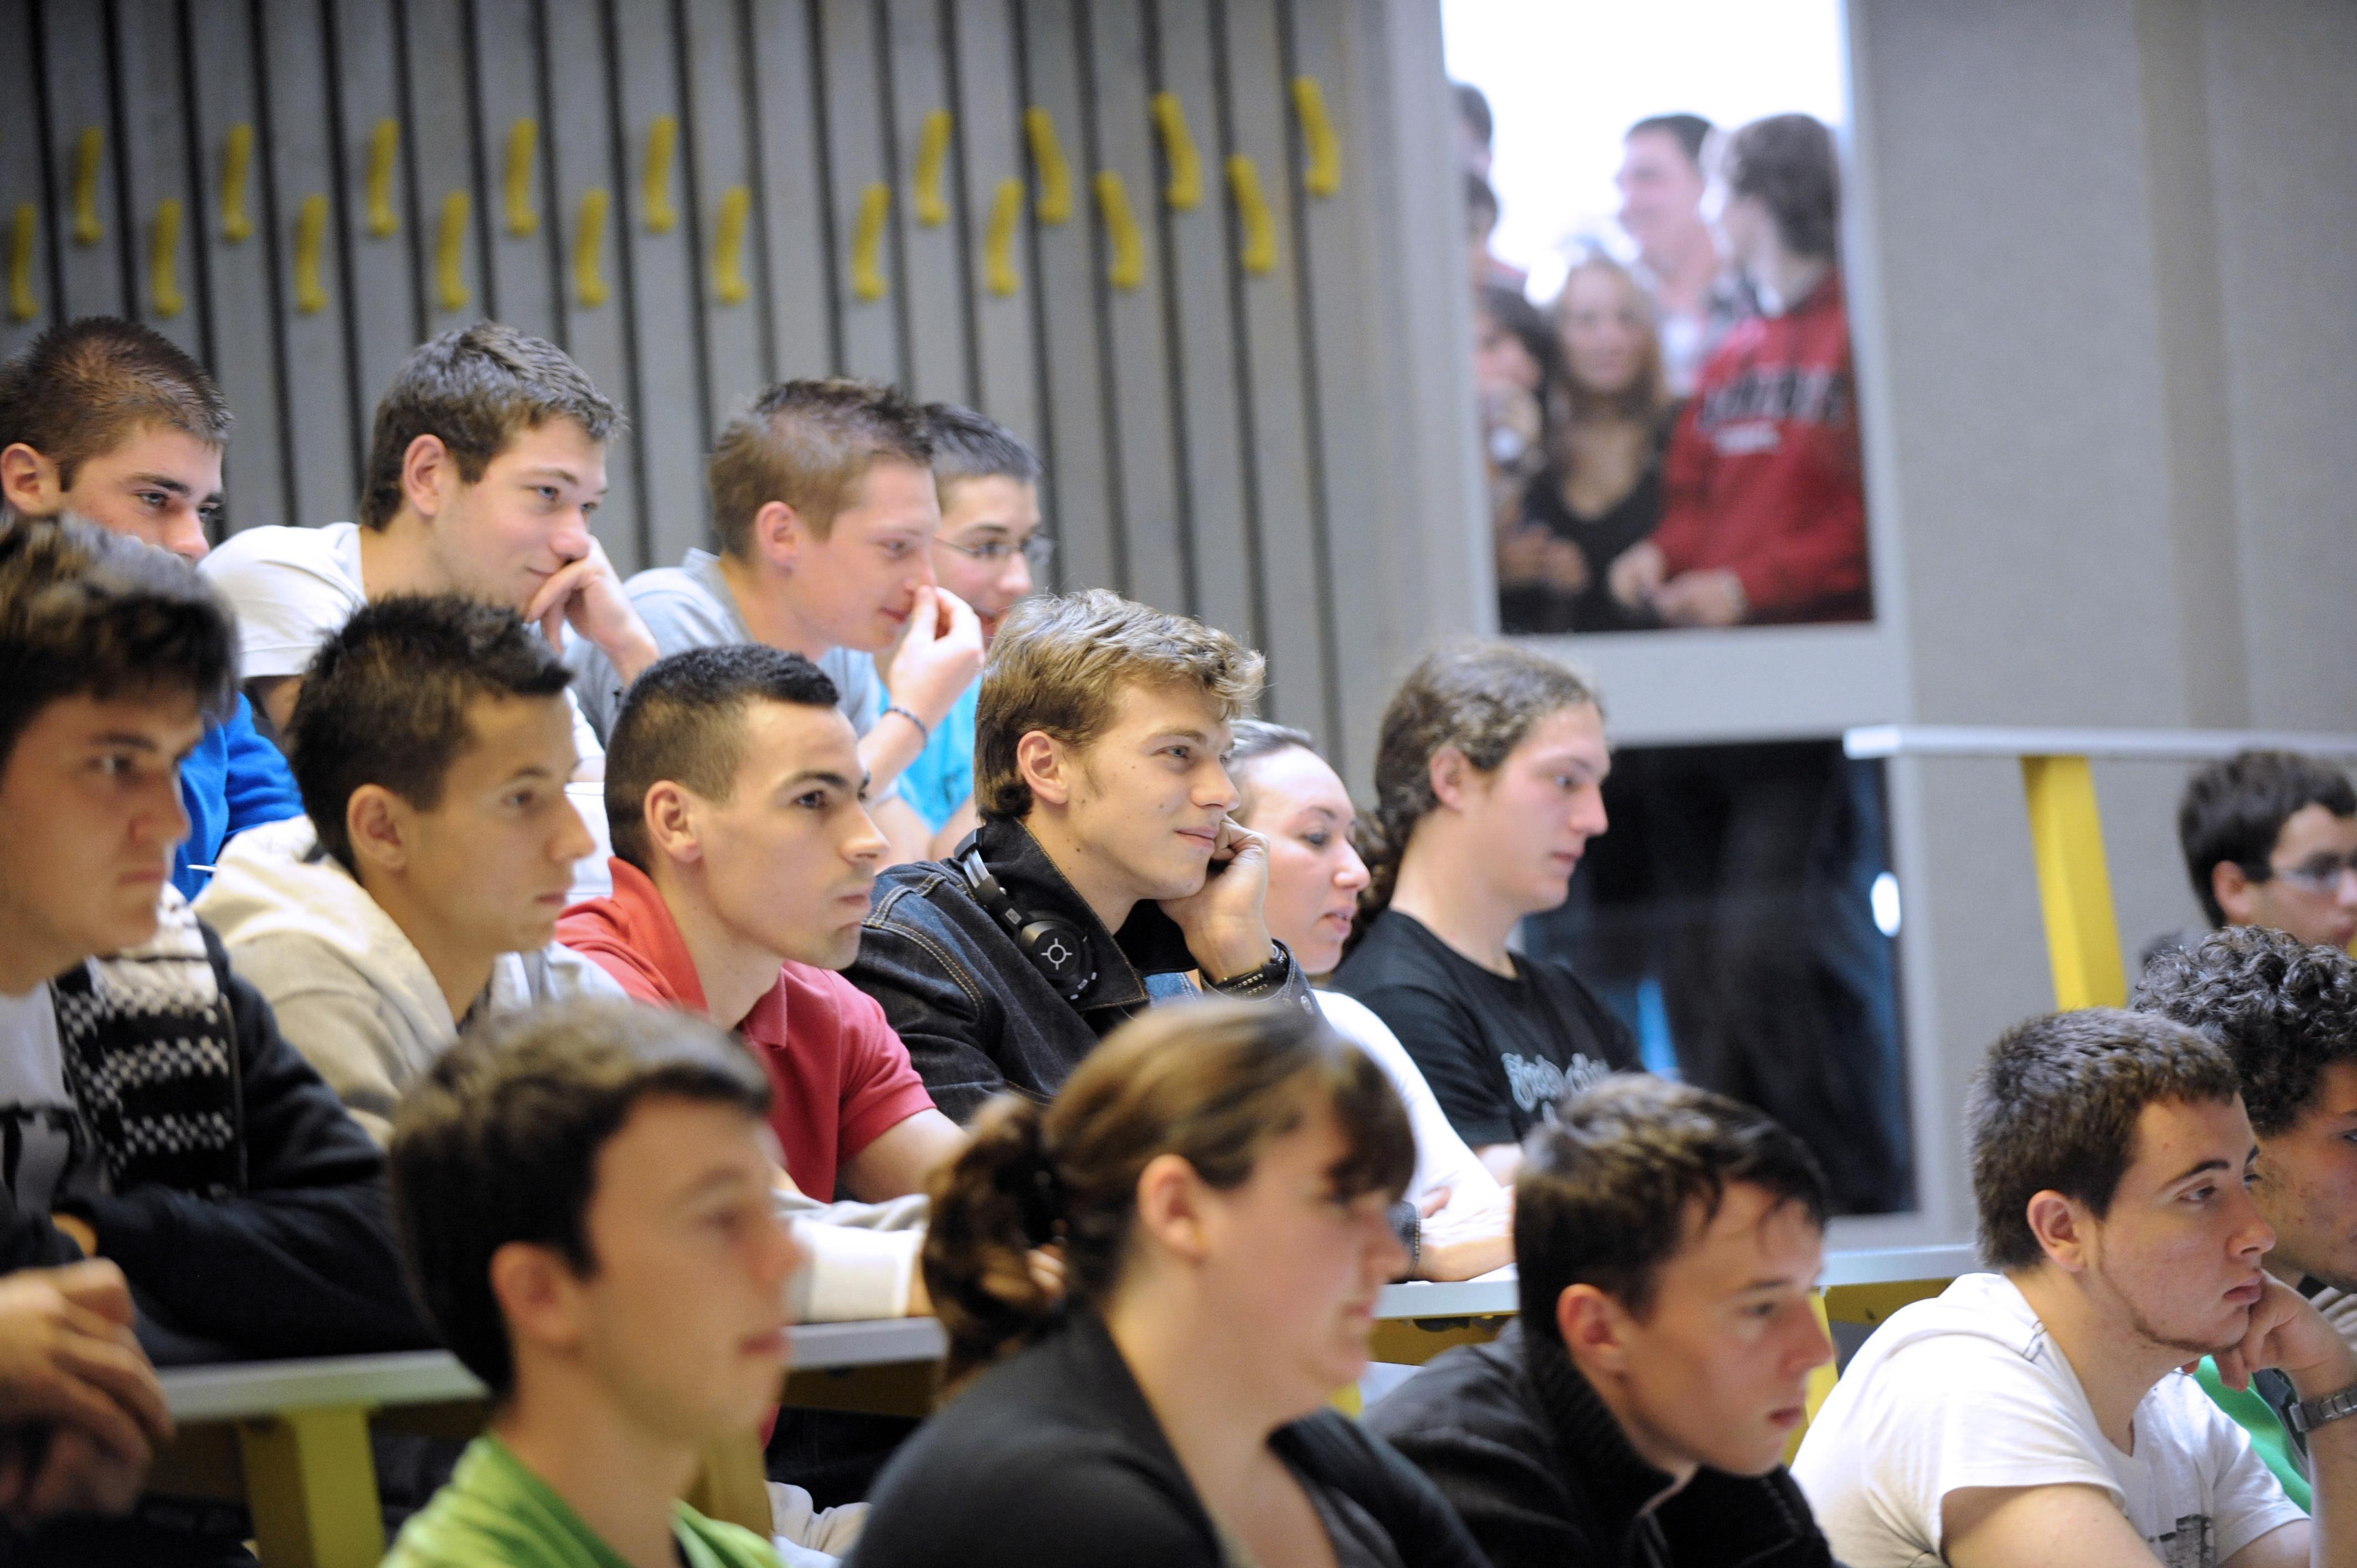 A group of freshmen economy students stand together chatting after they attended an information lecture 16 October 2003 in an auditorium of the technical university of Berlin at the beginning of the winter semester.